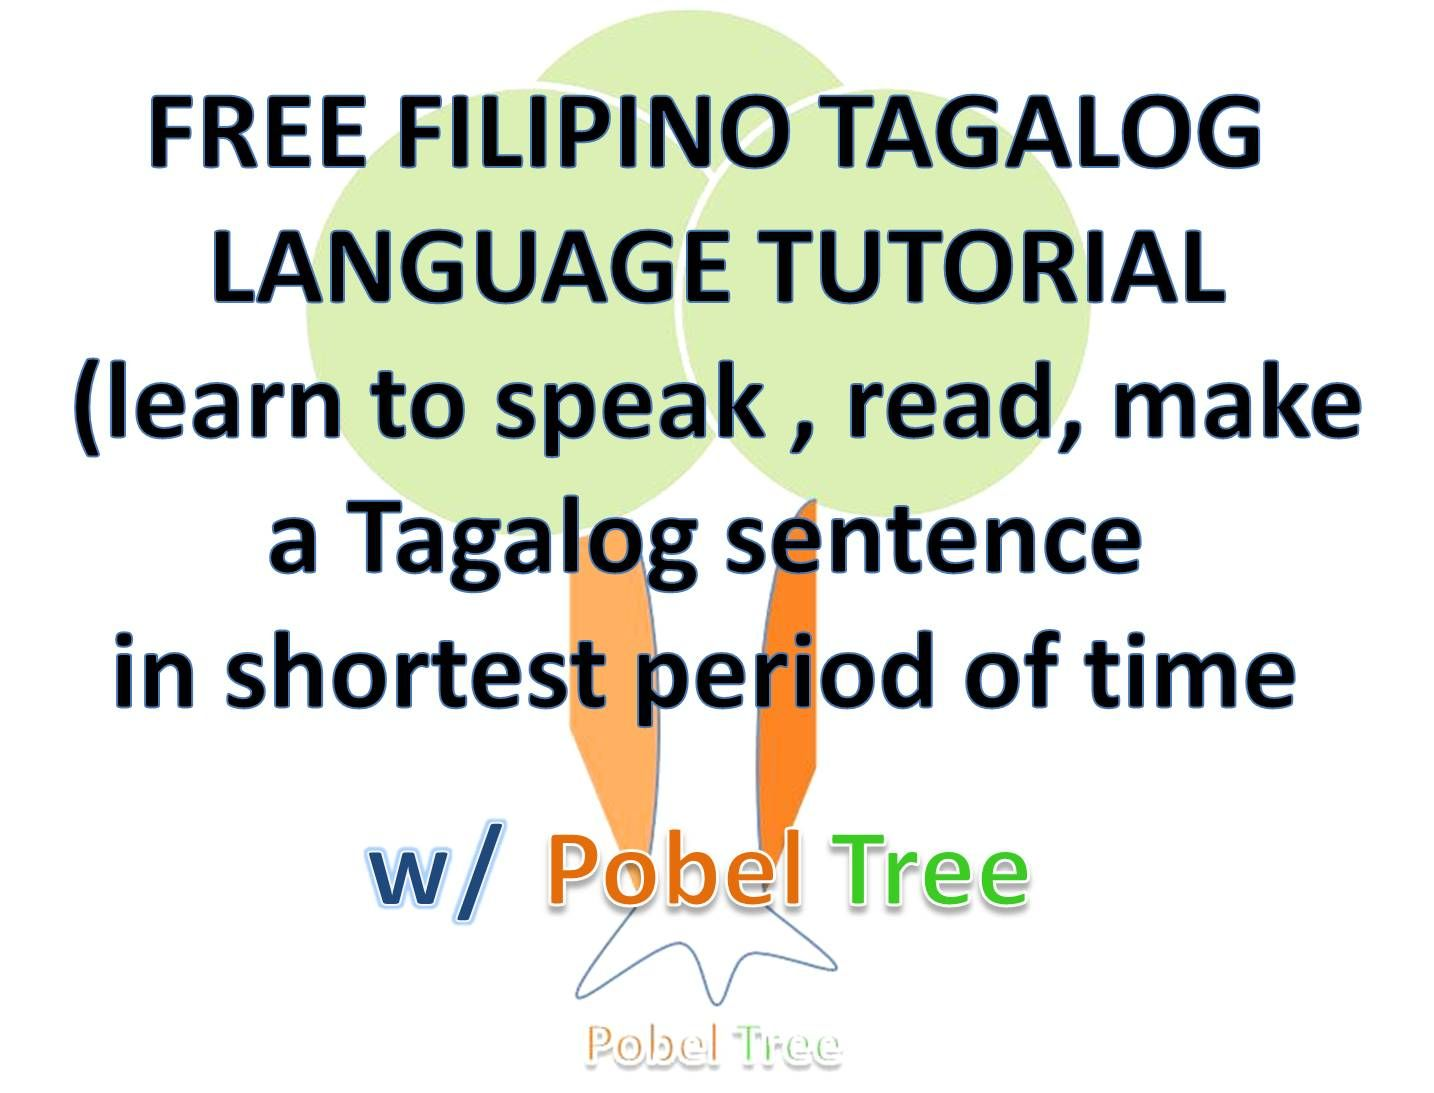 This Is A Free Filipino Tagalog Language Tutorial You Will Learn